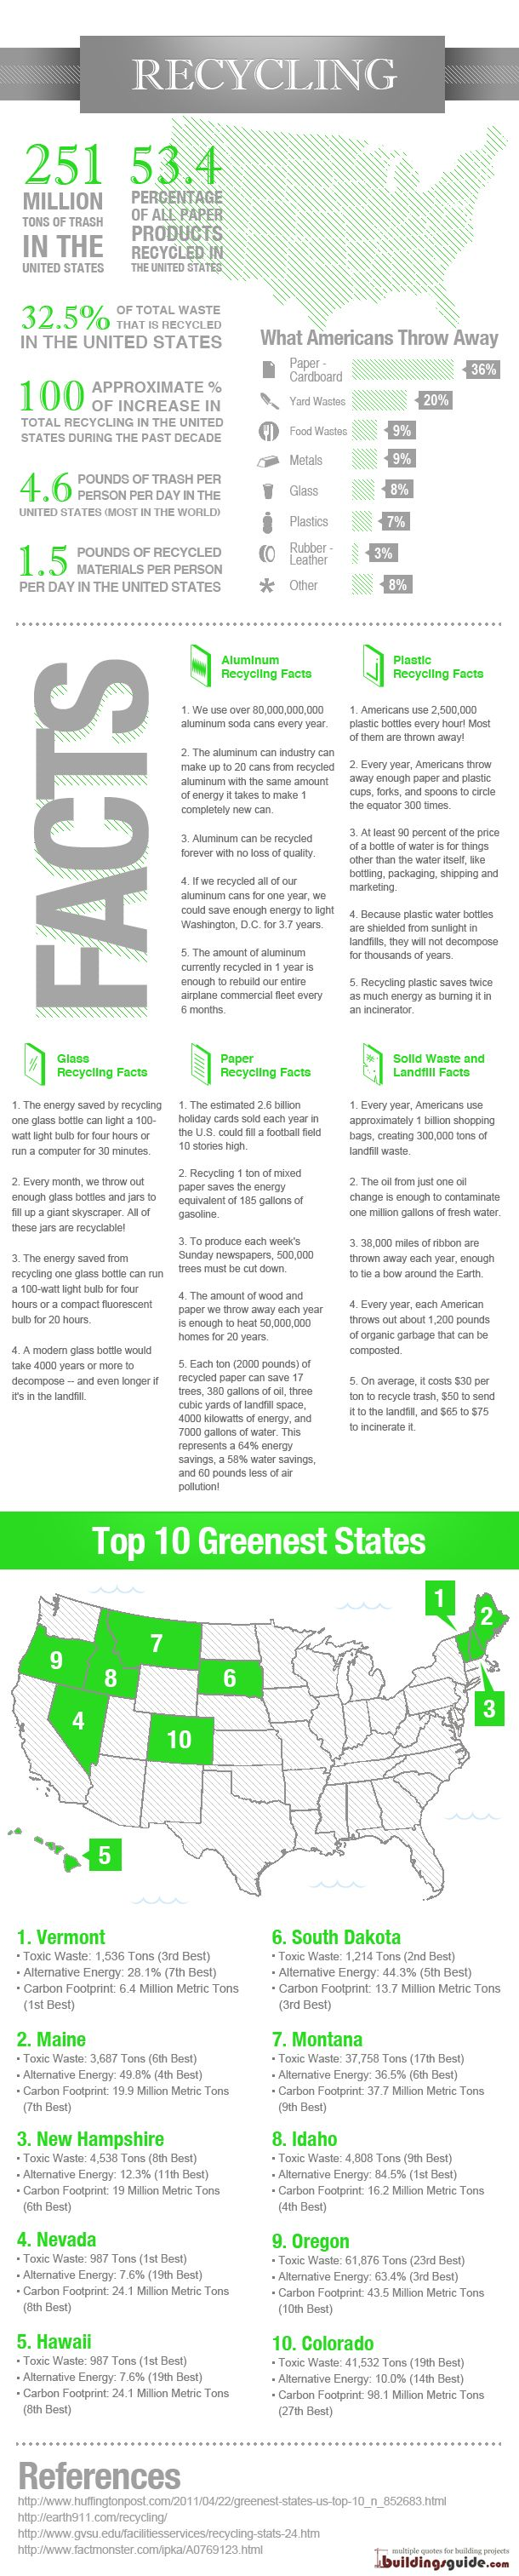 """Earth911.com article about the top 10 greenest states.  No surprises here, but my state is not in the top 10 :(  Some interesting stats on recycling too, for example """"Every year Americans use 1 BILLION plastic shopping bags, creating 300,000 tons of landfill waste"""" ."""